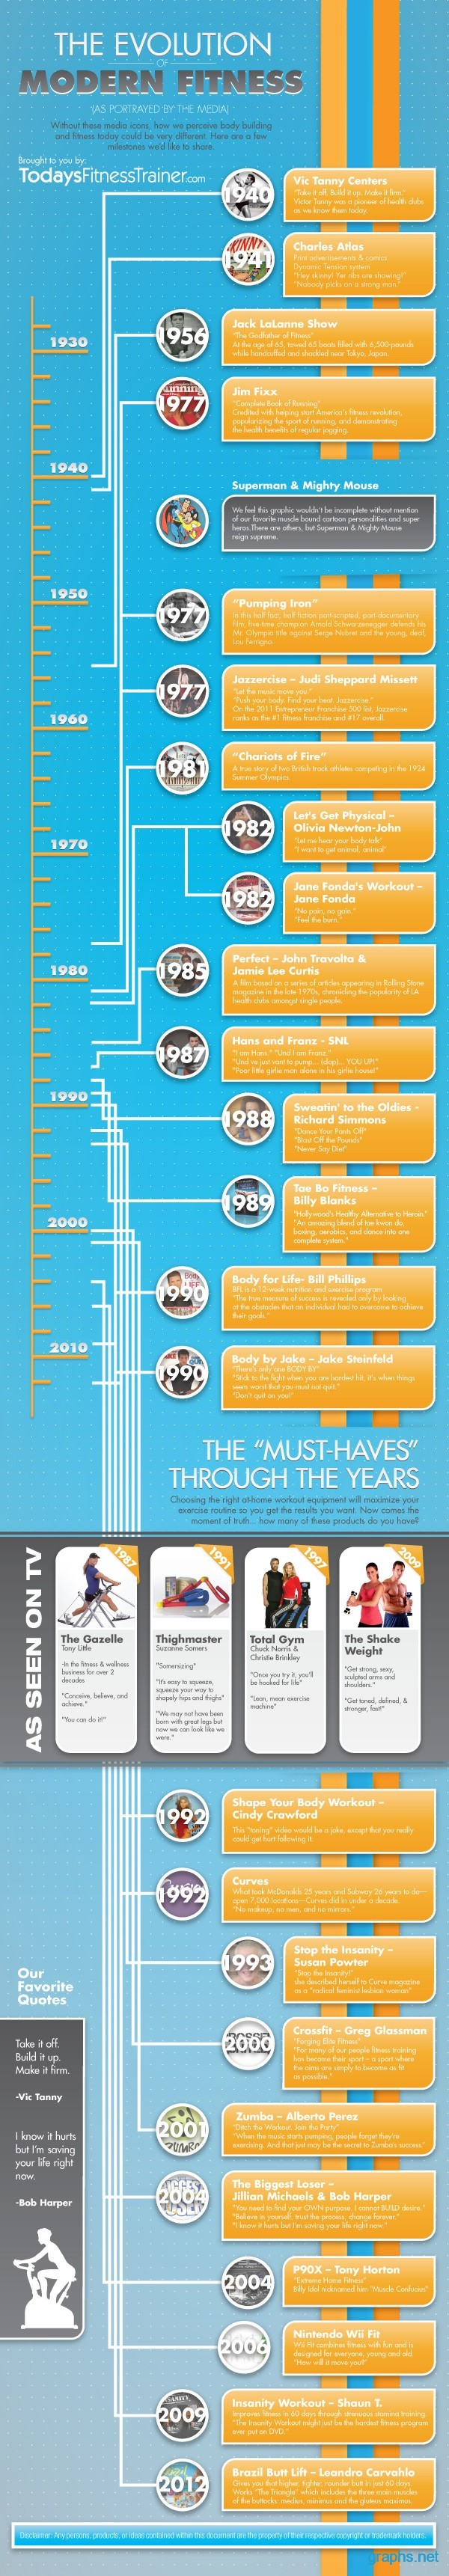 Fitness History Timeline Chart